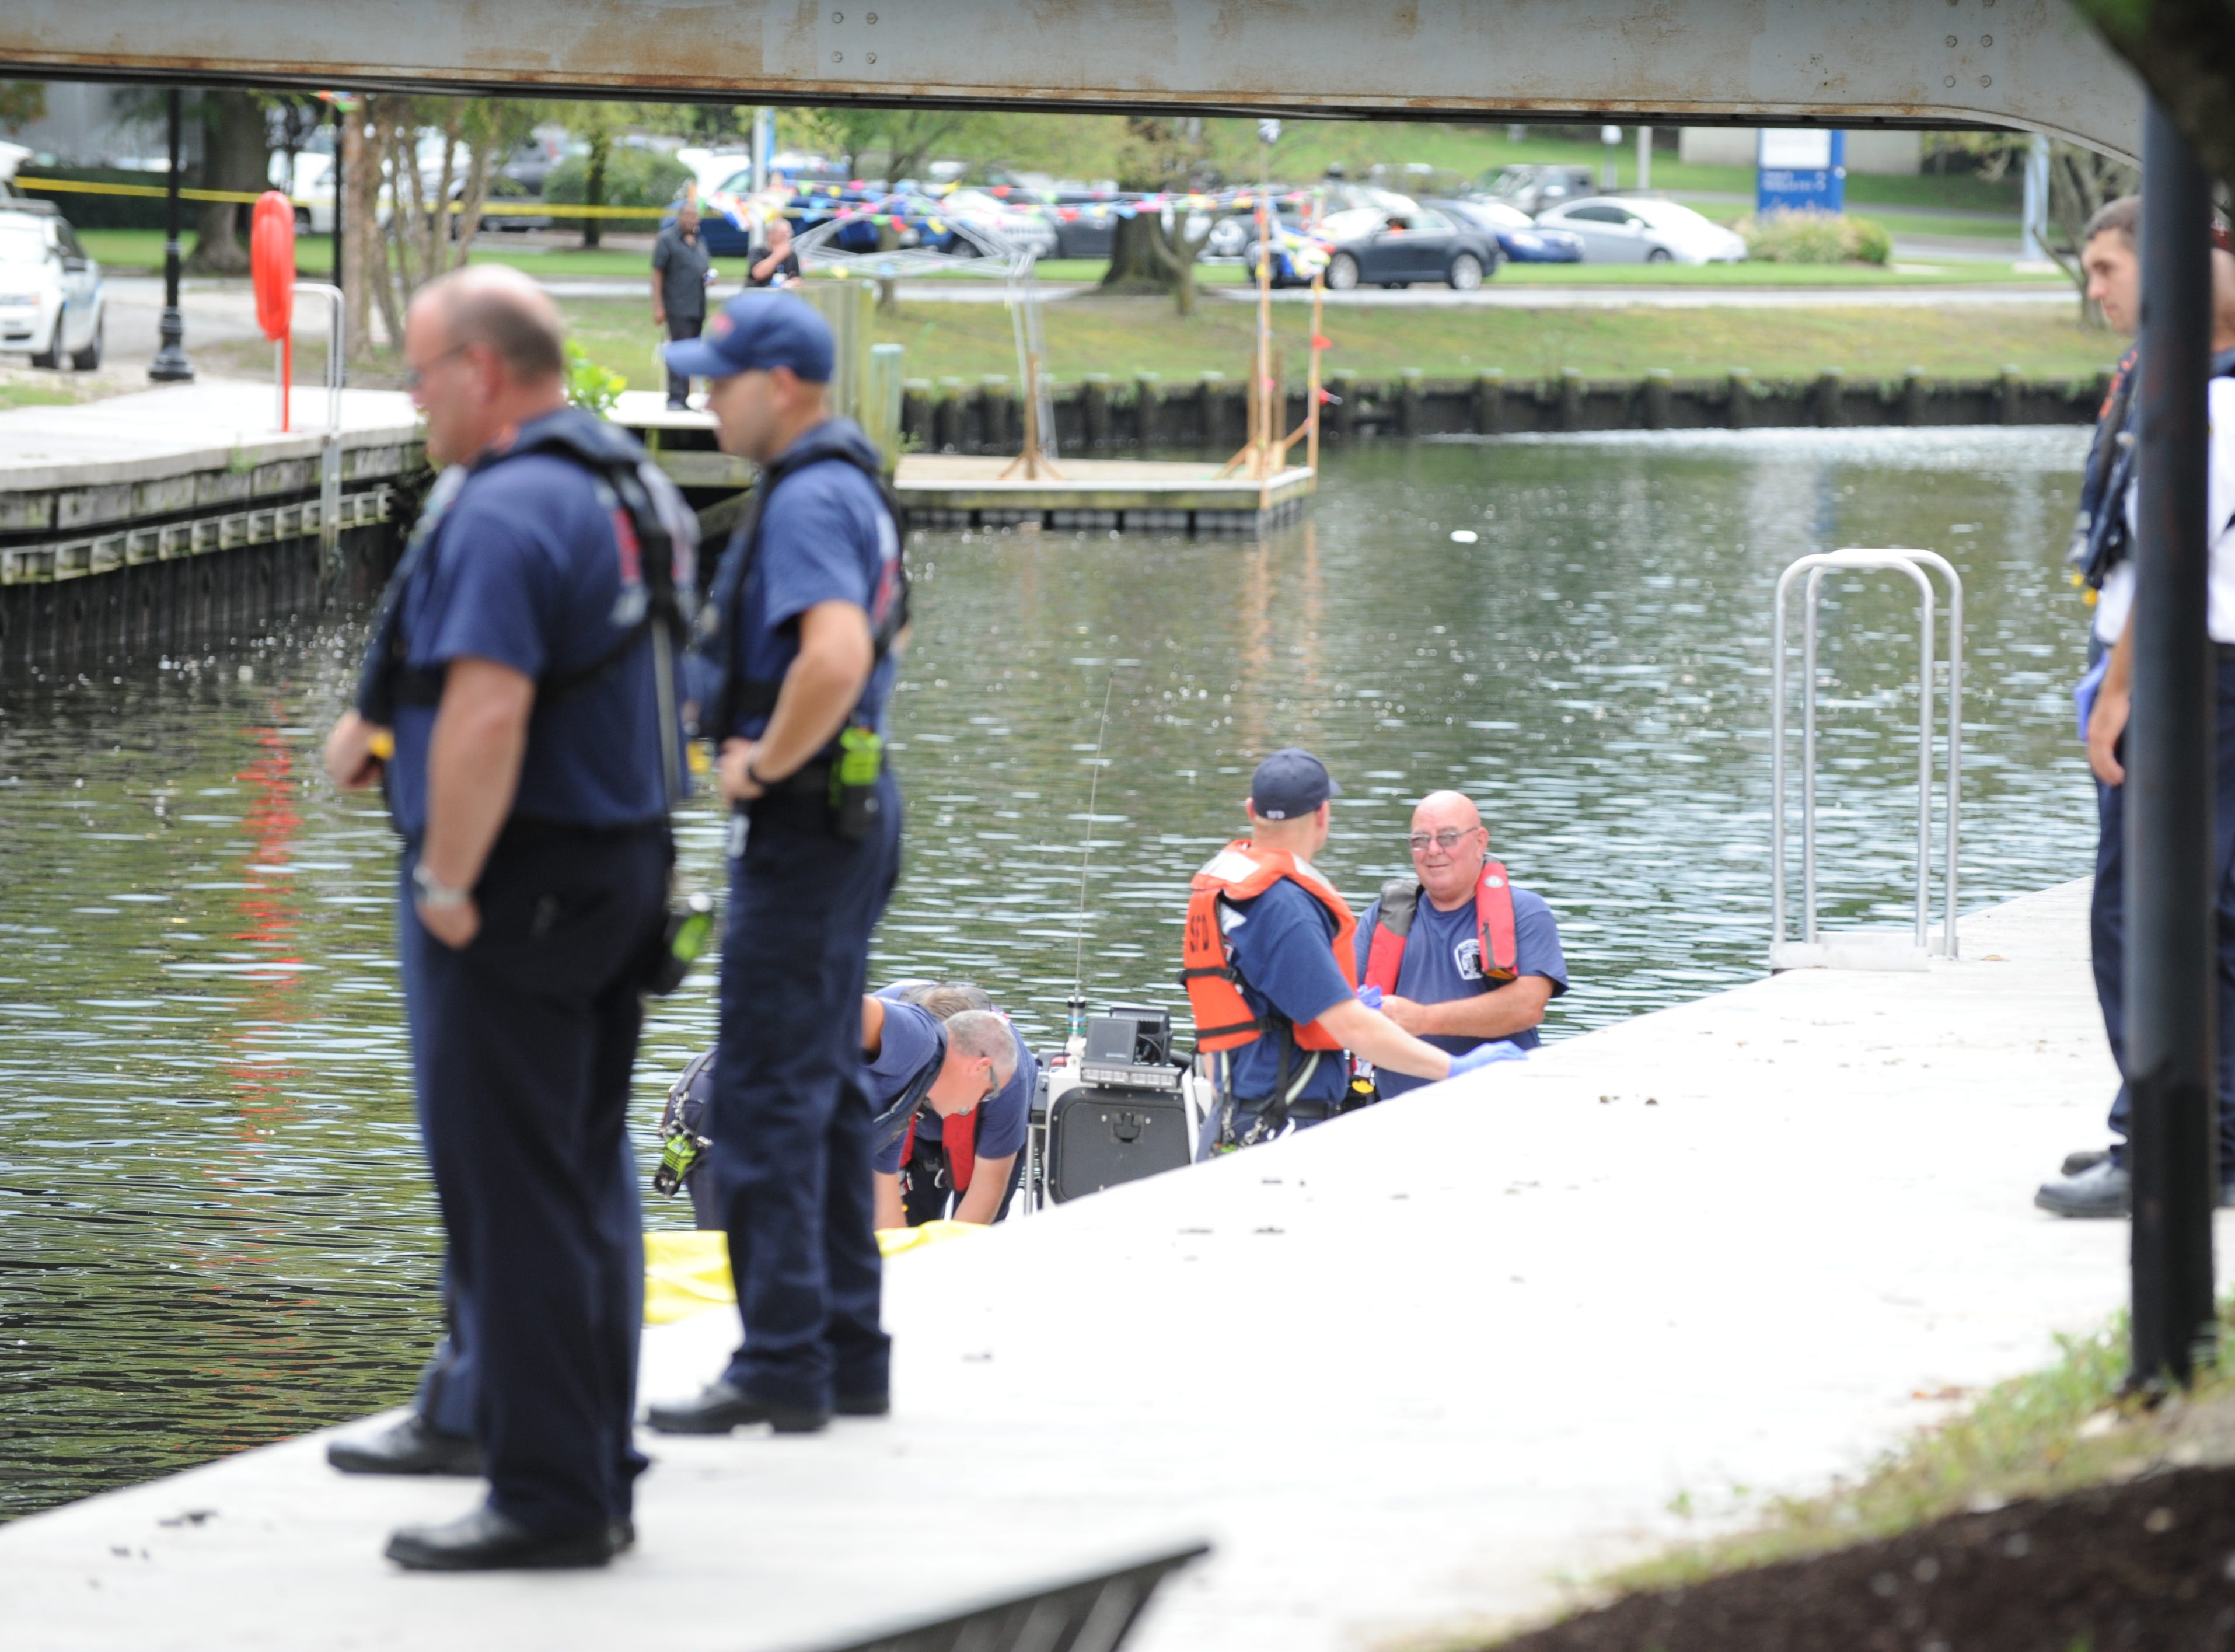 Officers respond to a body located in the Wicomico River.